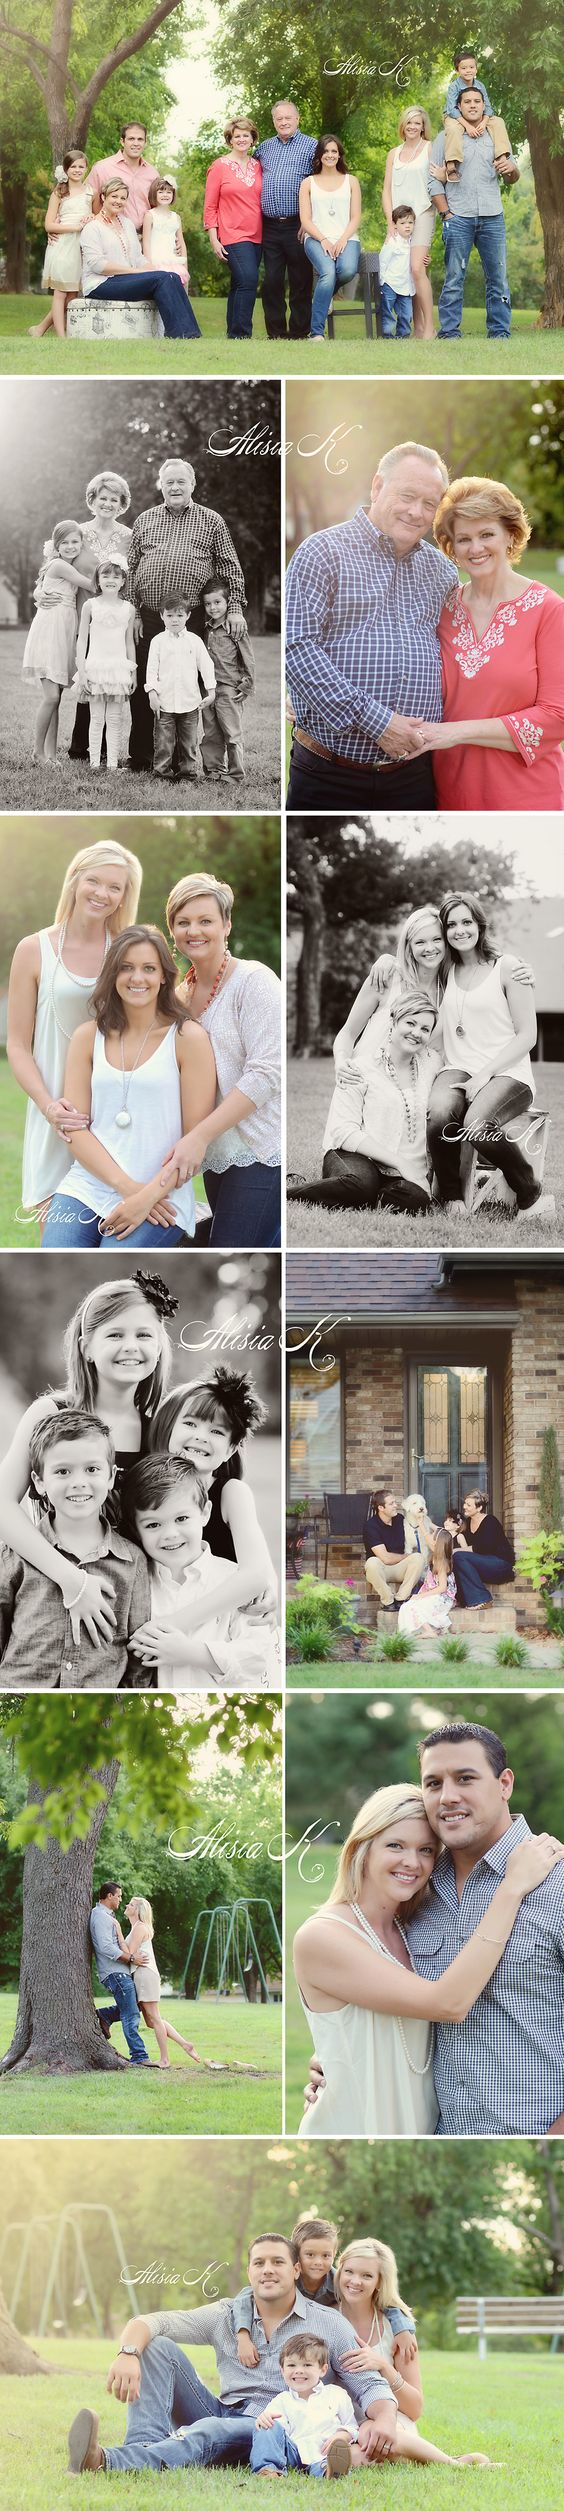 Alisia K Photography, Family Photographer, Springfield, Missouri. LOVE the first pic with the big family slightly separated into family groups